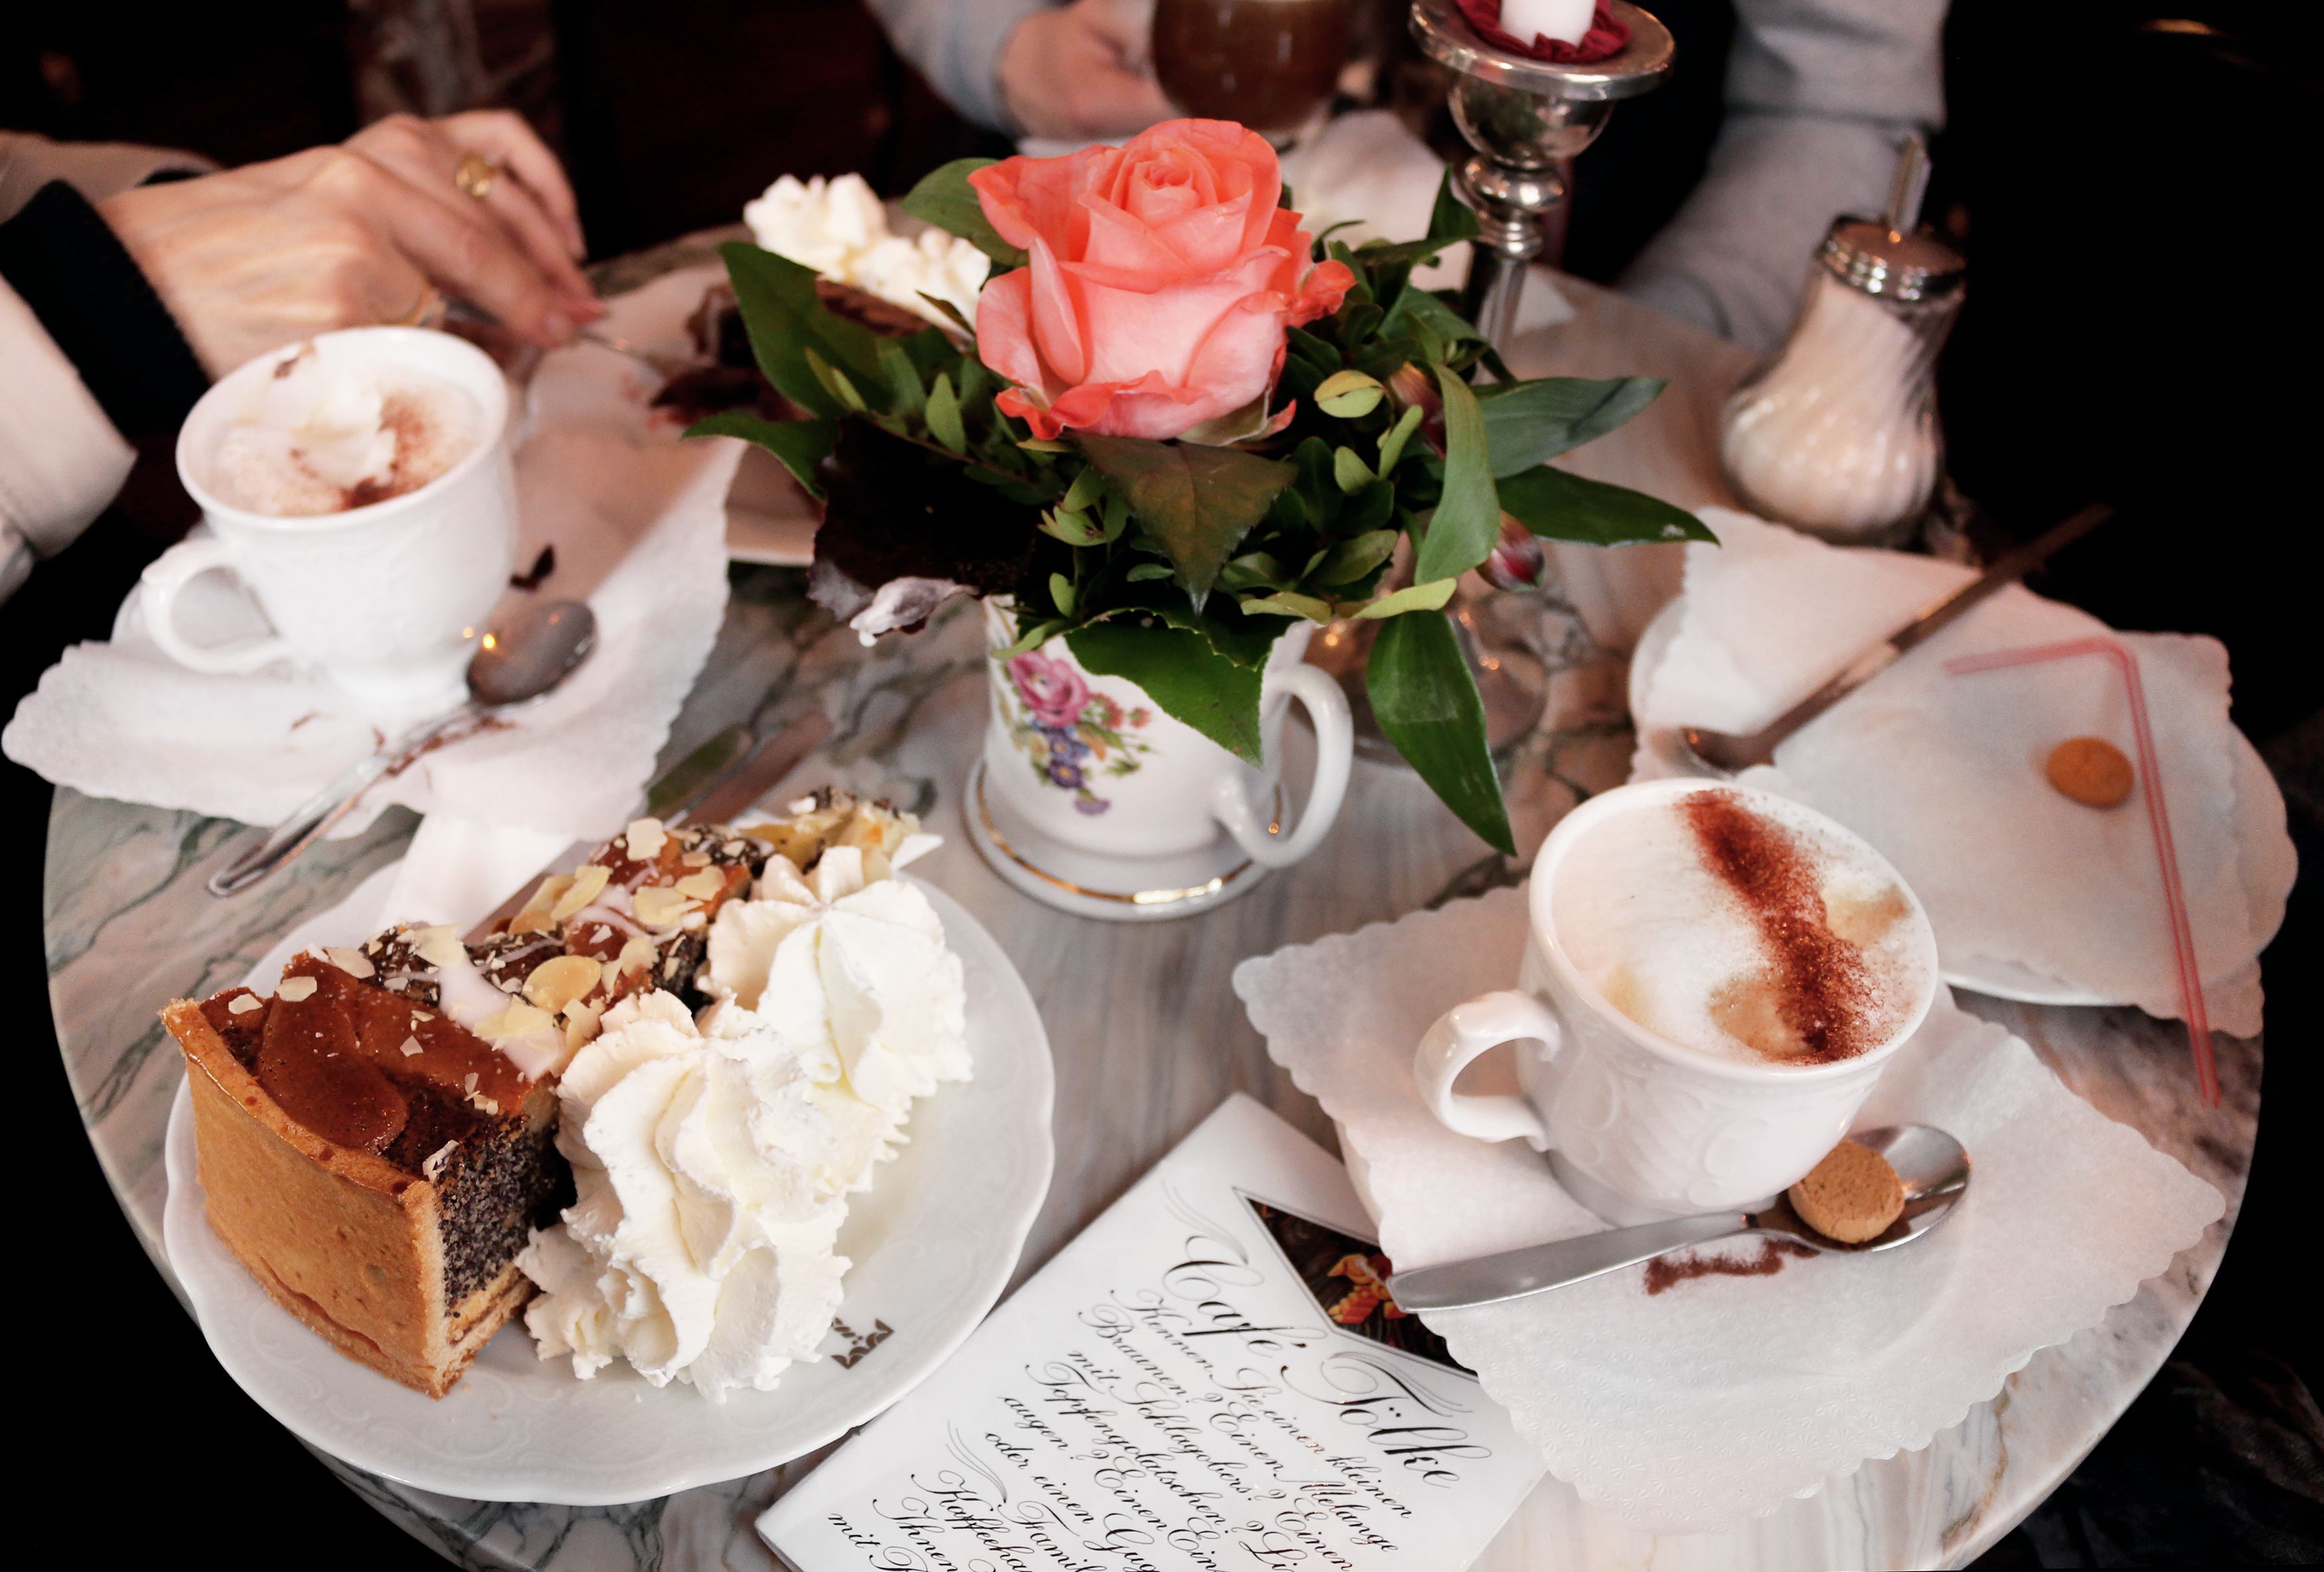 Best cakes in Bremen: Cafe Tölke